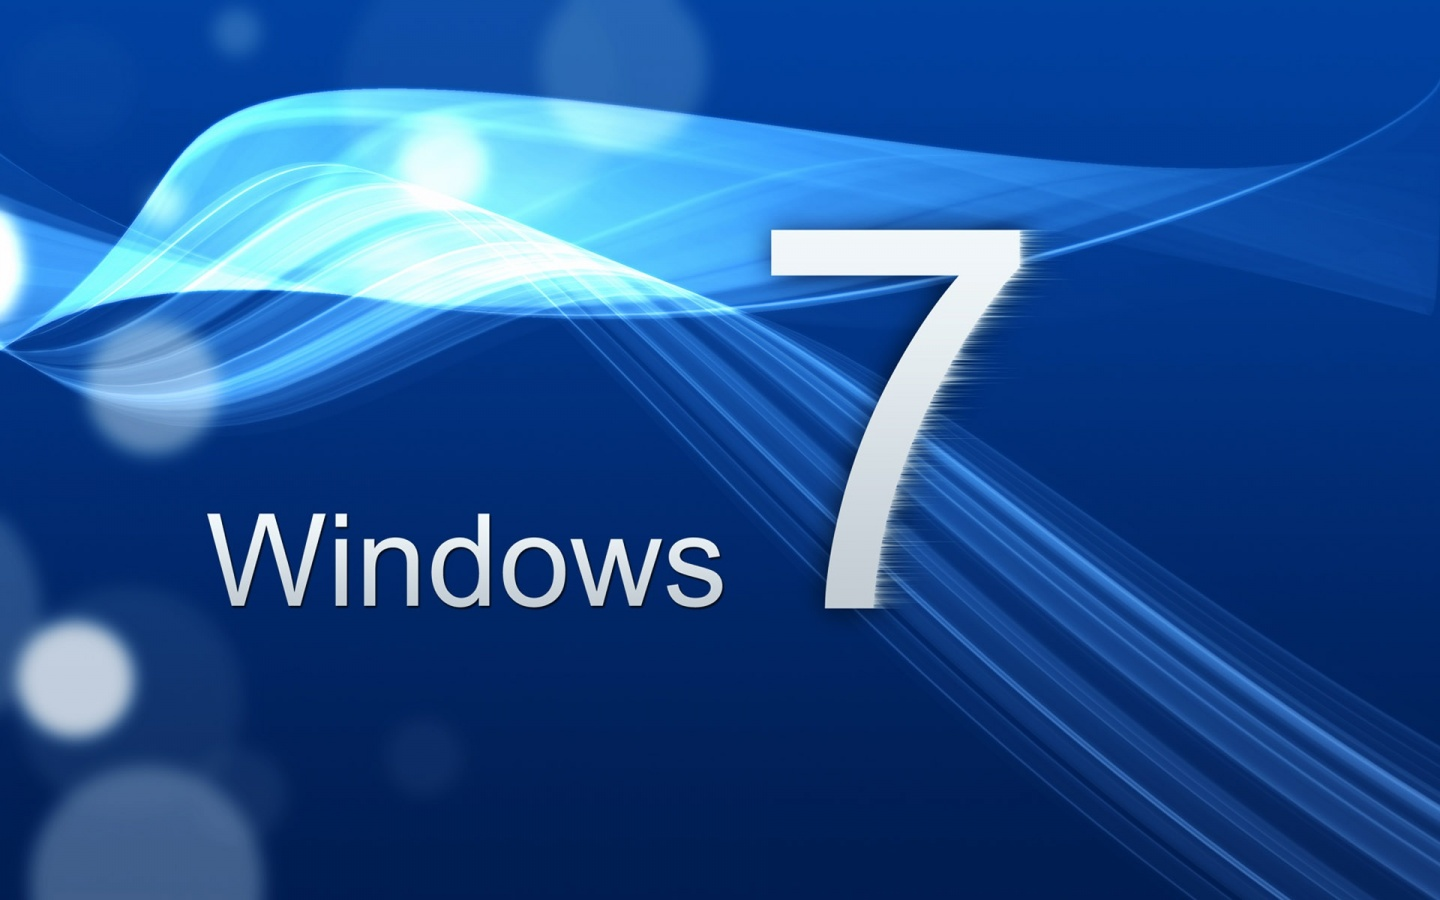 Windows 7 HD Wallpapers   c HD Wallpapers 1440x900